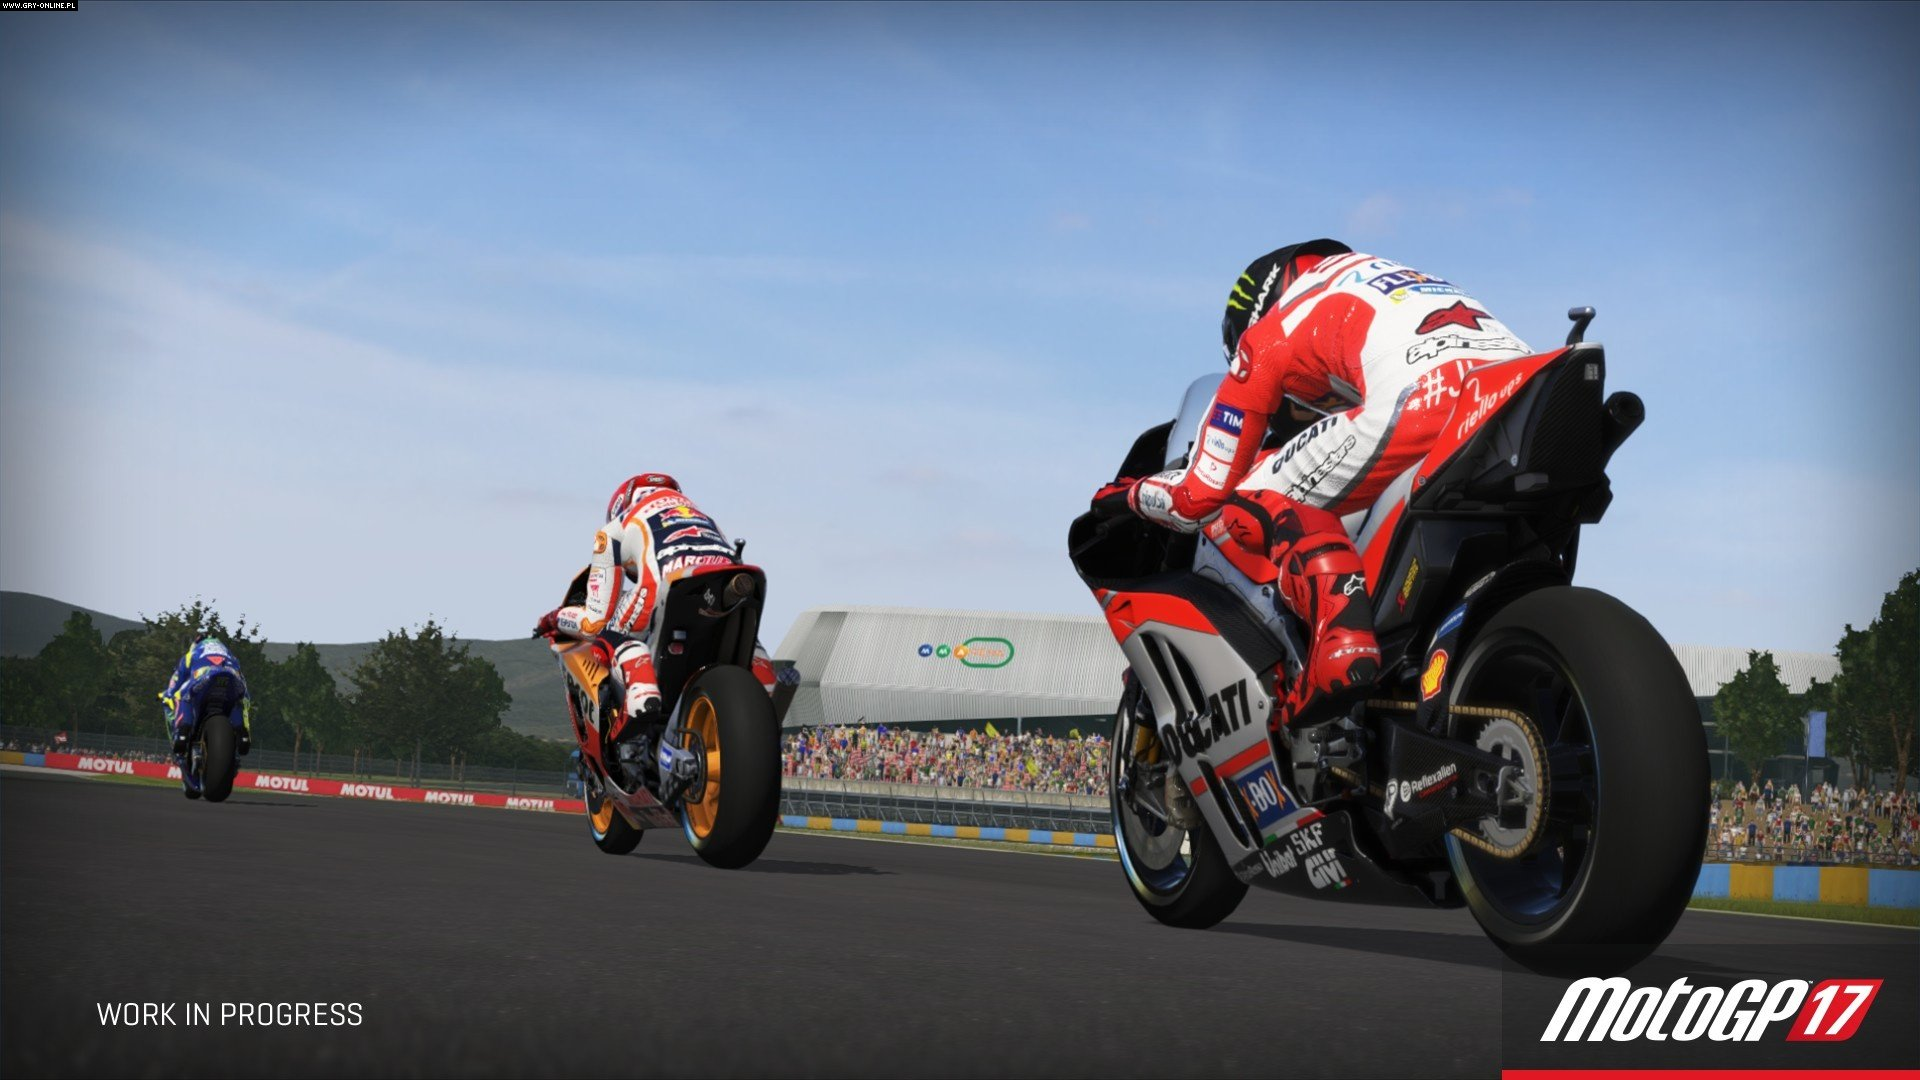 MotoGP 17 PC, PS4, XONE Gry Screen 63/71, Milestone